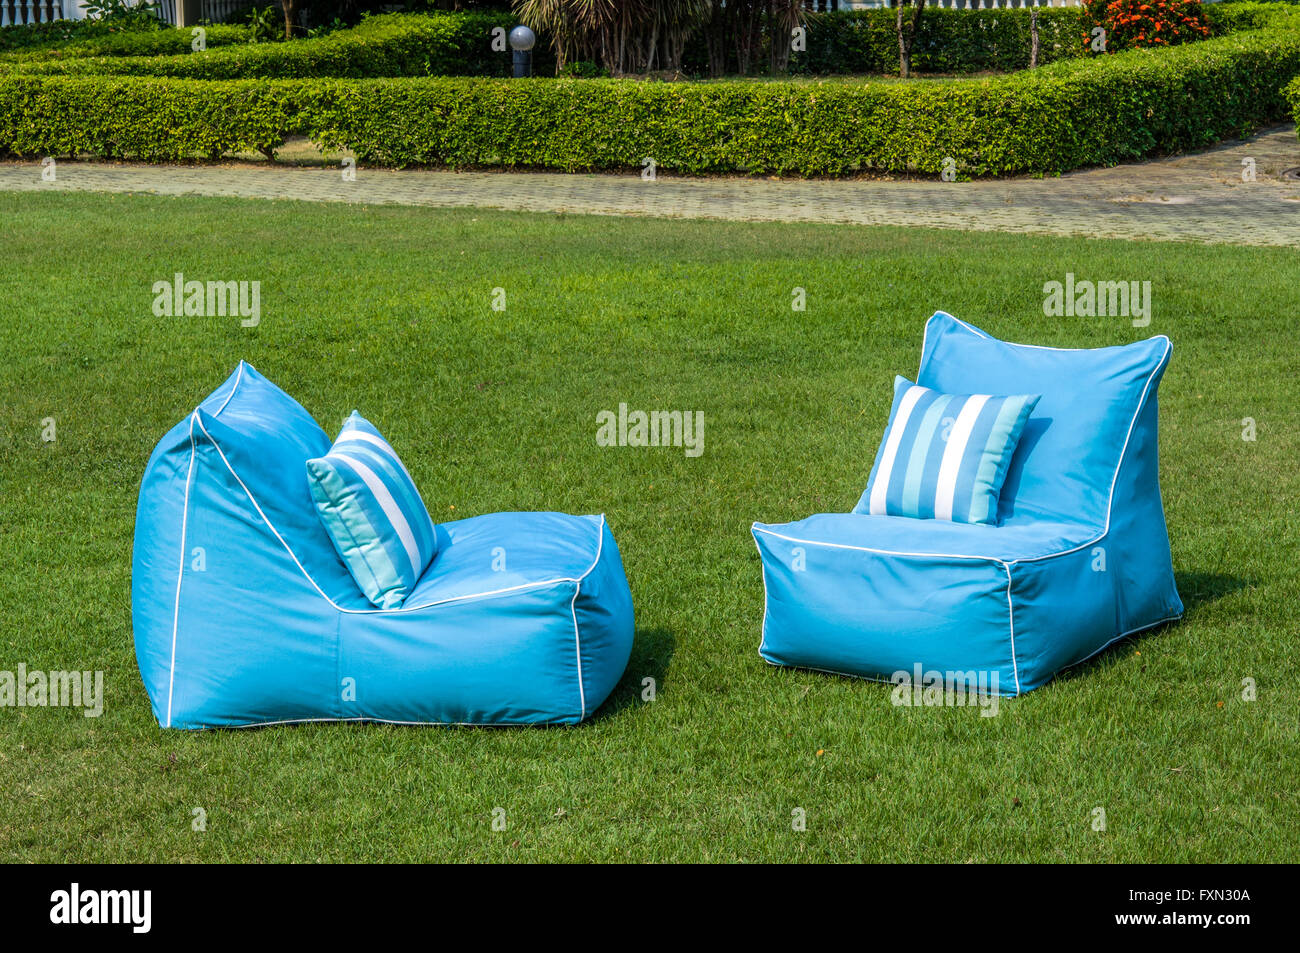 Outdoor bean bags with water resistant pillows - Stock Image